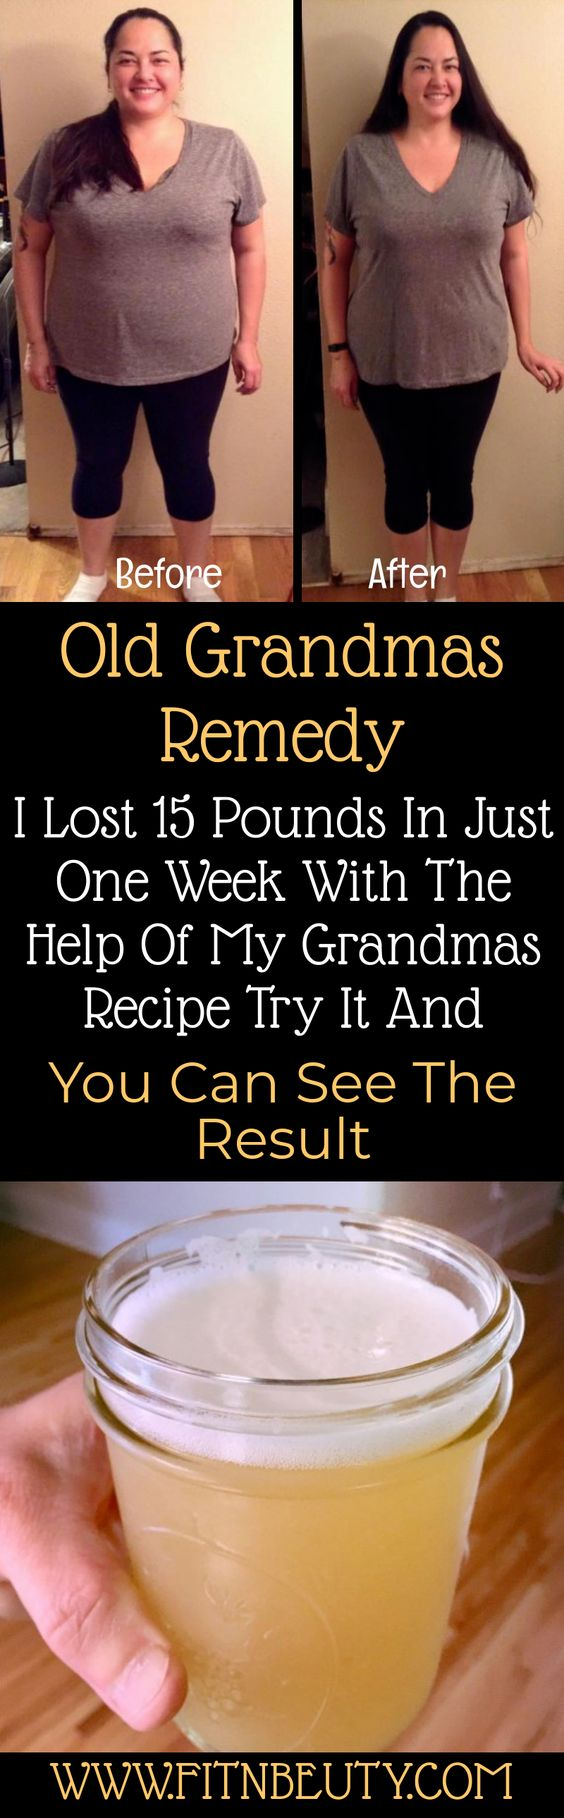 Old Grandmas Remedy I Lost 15 Pounds In Just One Week With The Help Of My Grandmas Recipe Try It And You Can See The Result